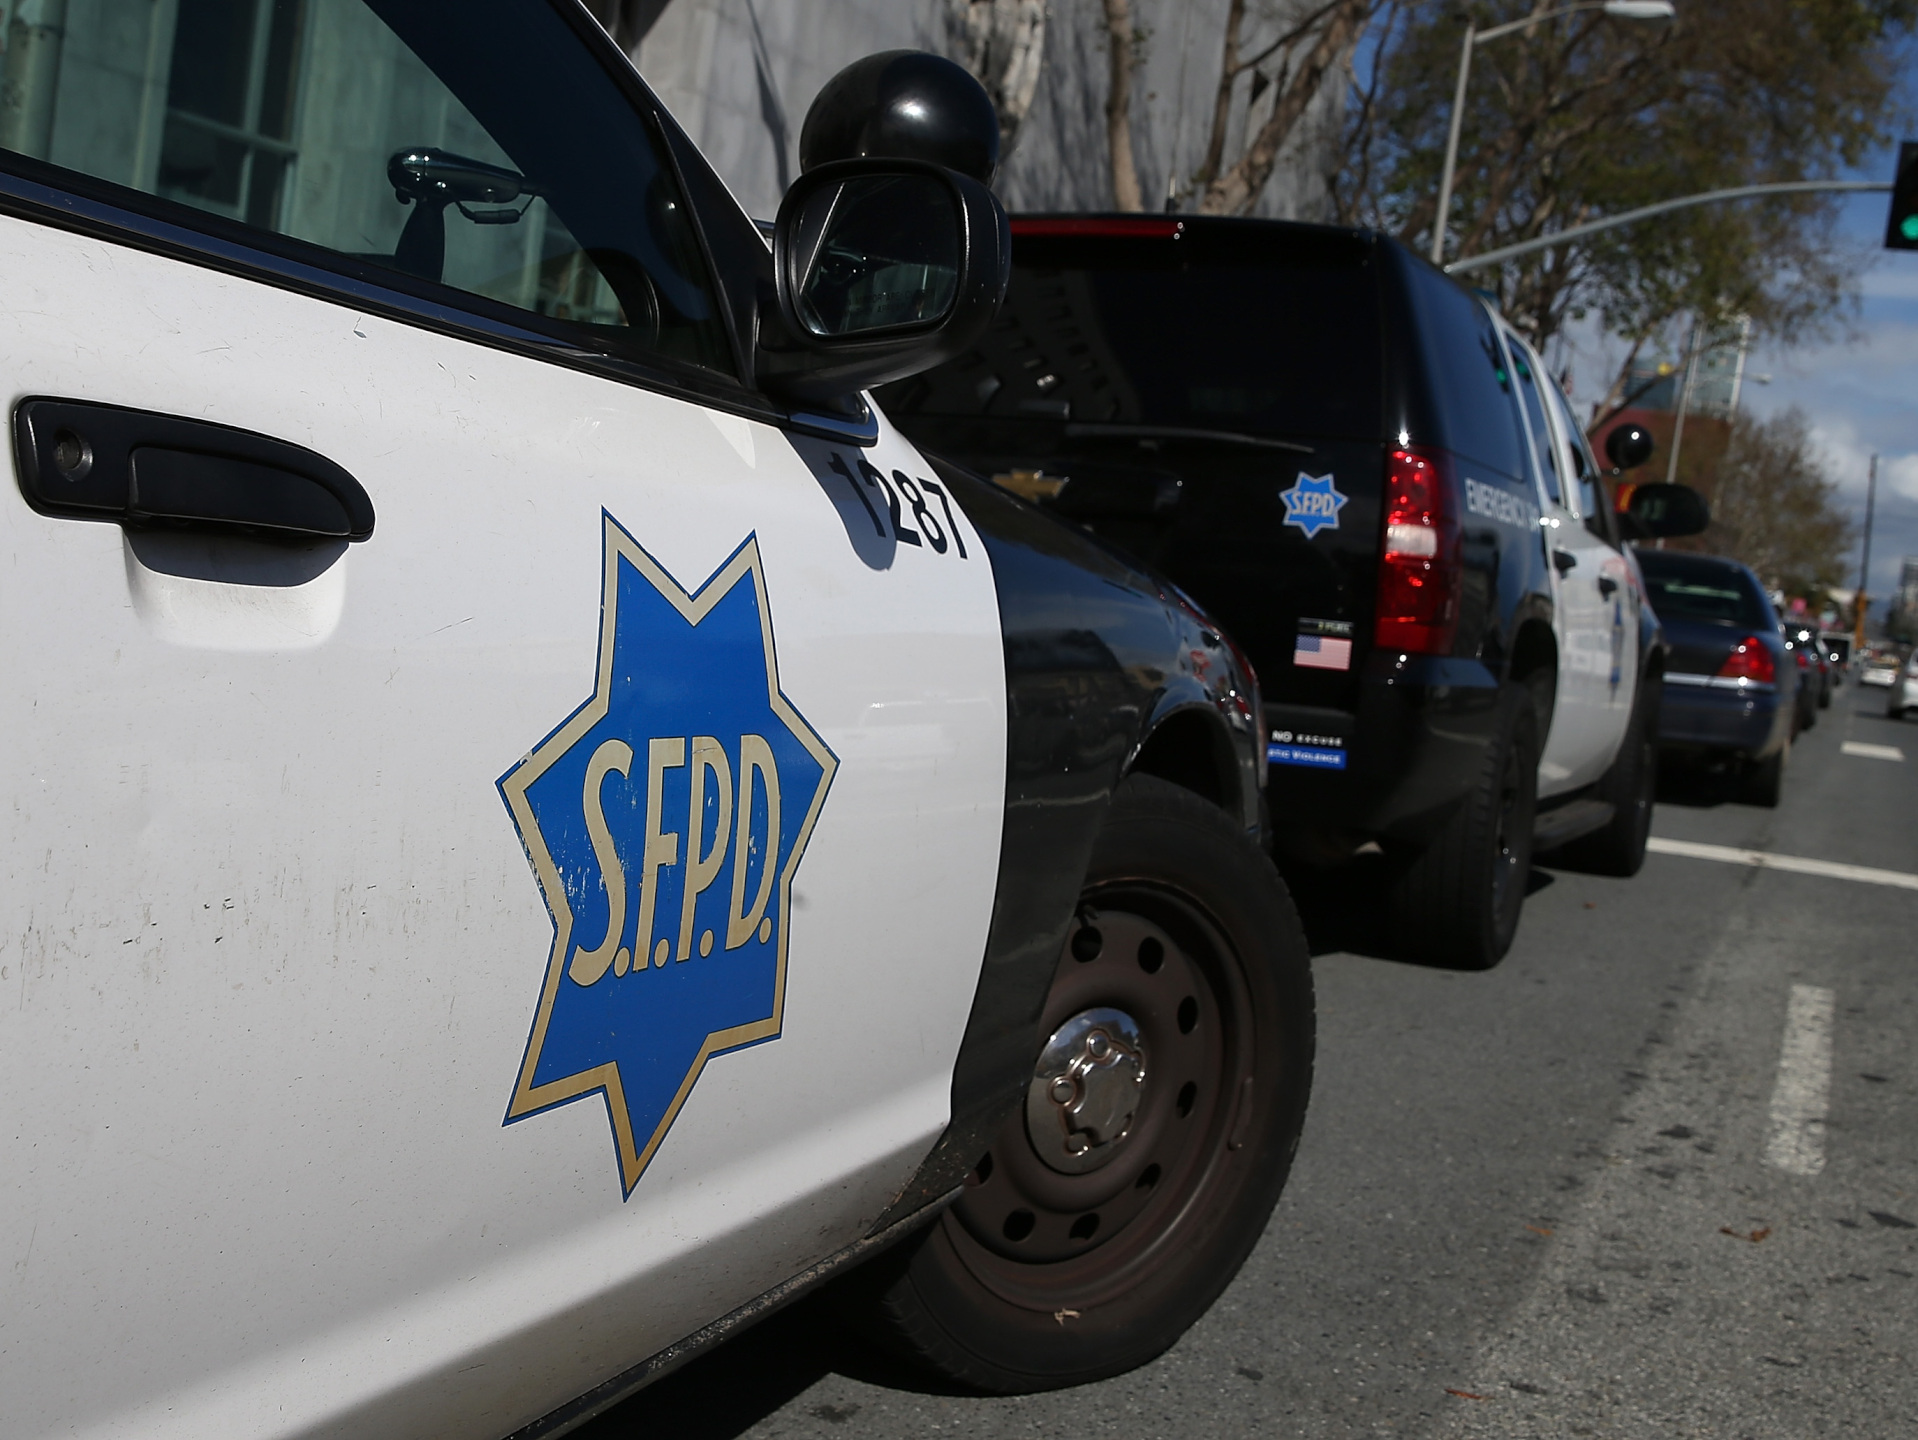 A San Francisco woman is suing the city and its police leaders for botching an investigation into her rape in 2010.